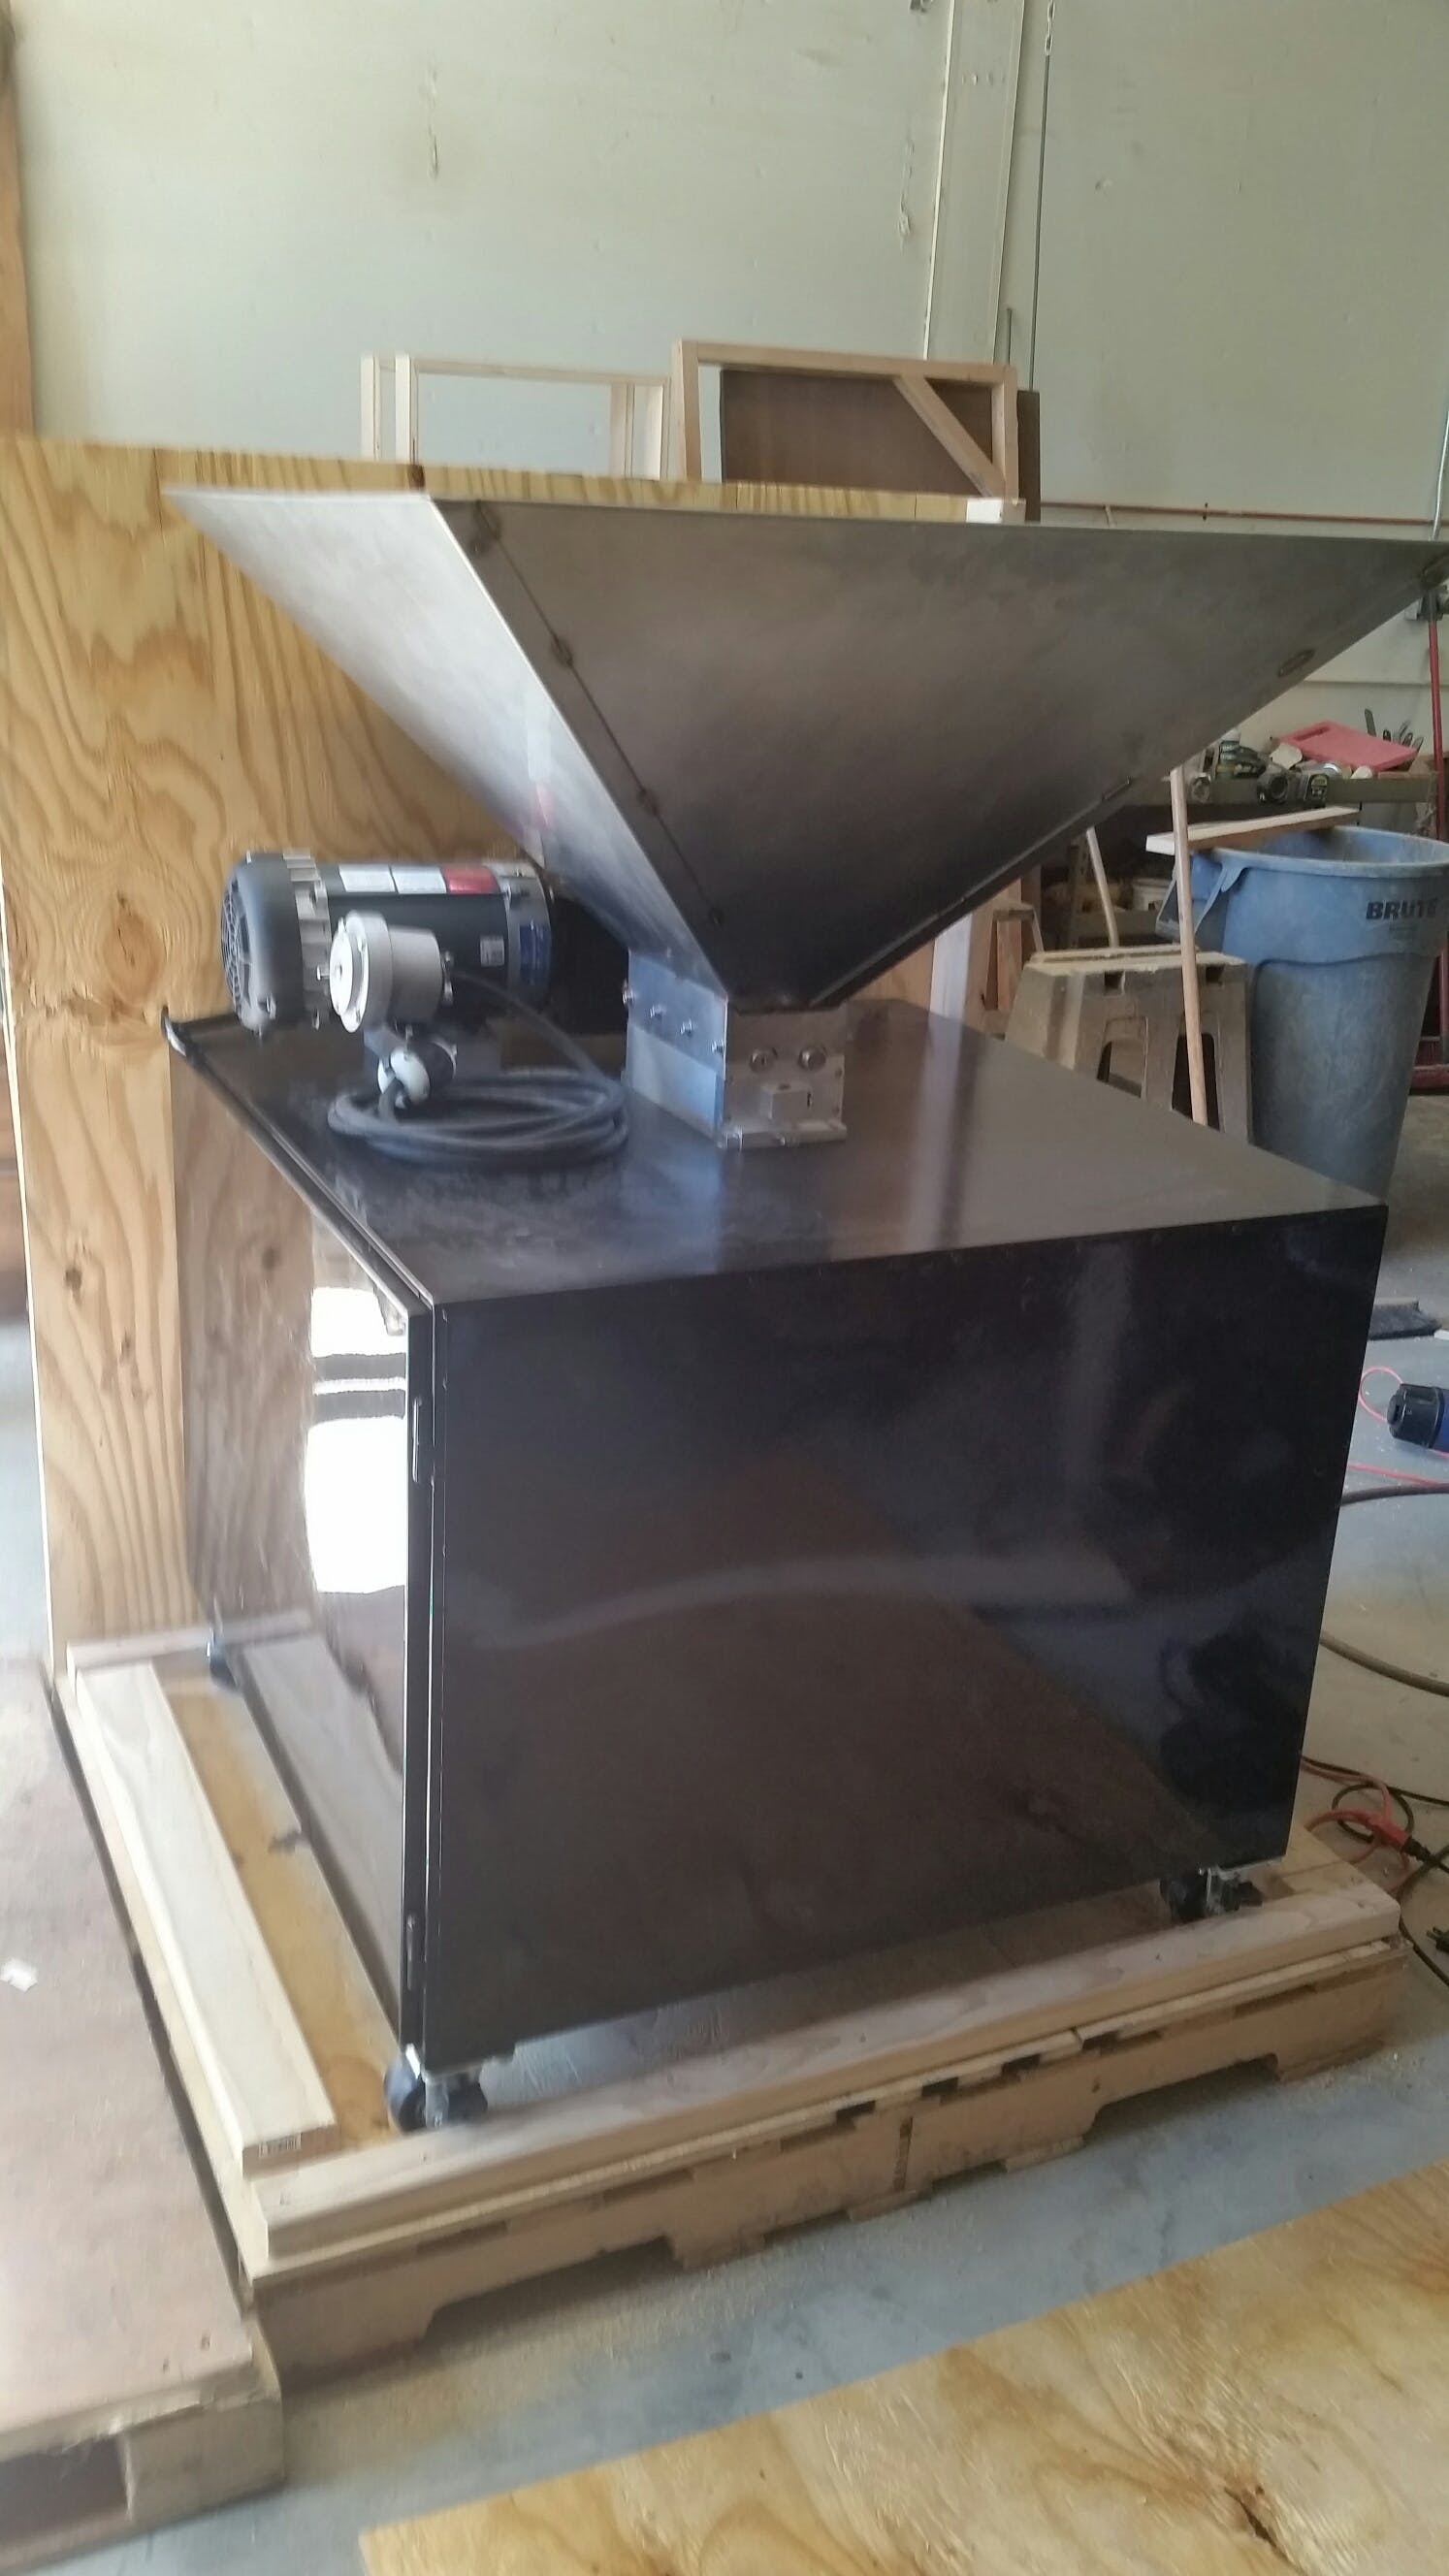 Grain Mill Grain roller mill sold by Bru Gear